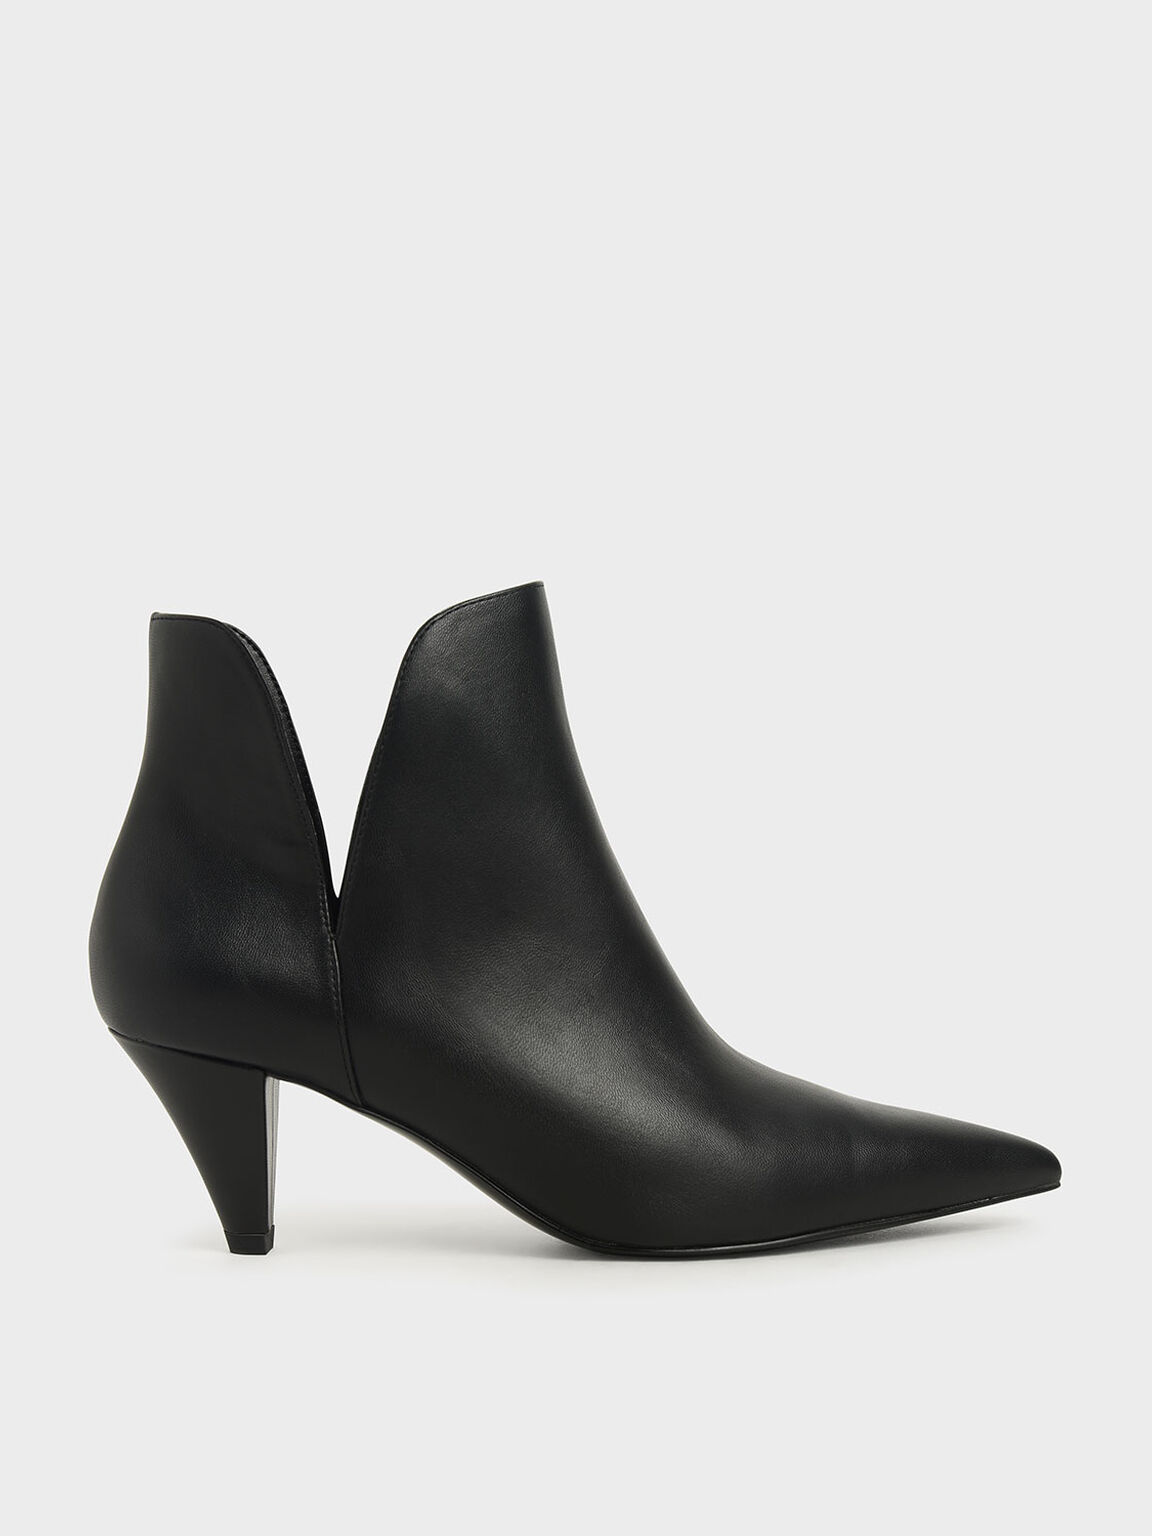 Cone Heel Ankle Boots, Black, hi-res